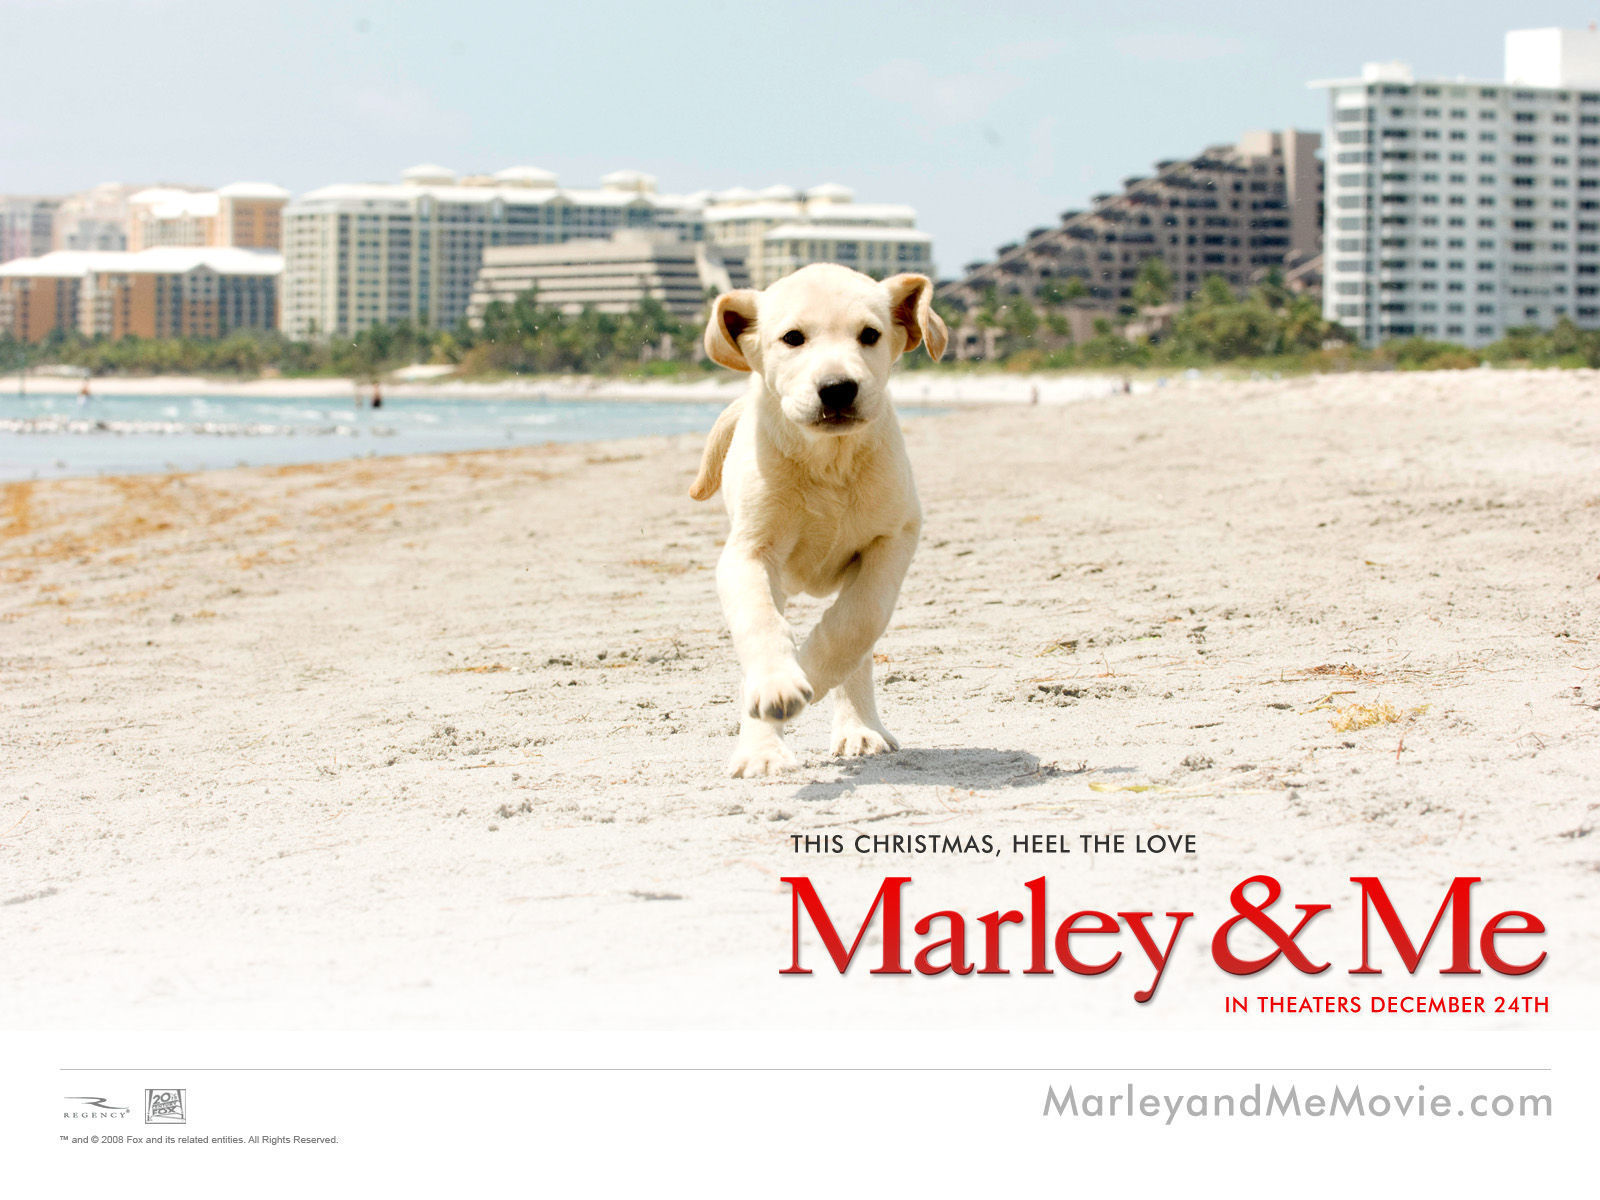 Remarkable, rather Marley and me sex pictures